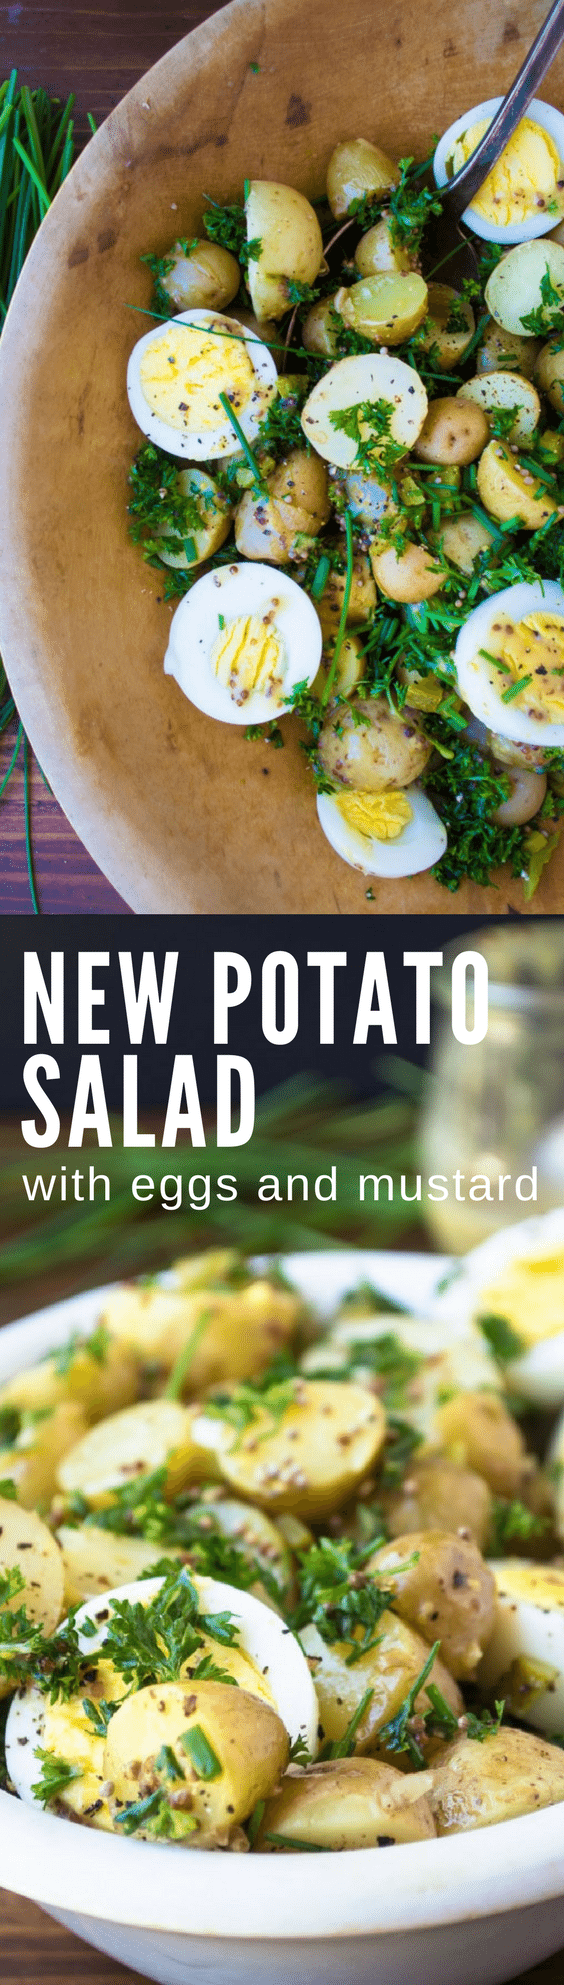 New Potato Salad with Eggs and Mustard ~ this gutsy potato salad will up your hamburger and hotdog game all spring and summer, and will quickly become your new favorite! #mayofree #potatosalad #eggs #potatoandeggsalad #saladrecipe #vegetables #potatoes #newpotatoes #summersaladrecipe #sidedish #salad #healthy